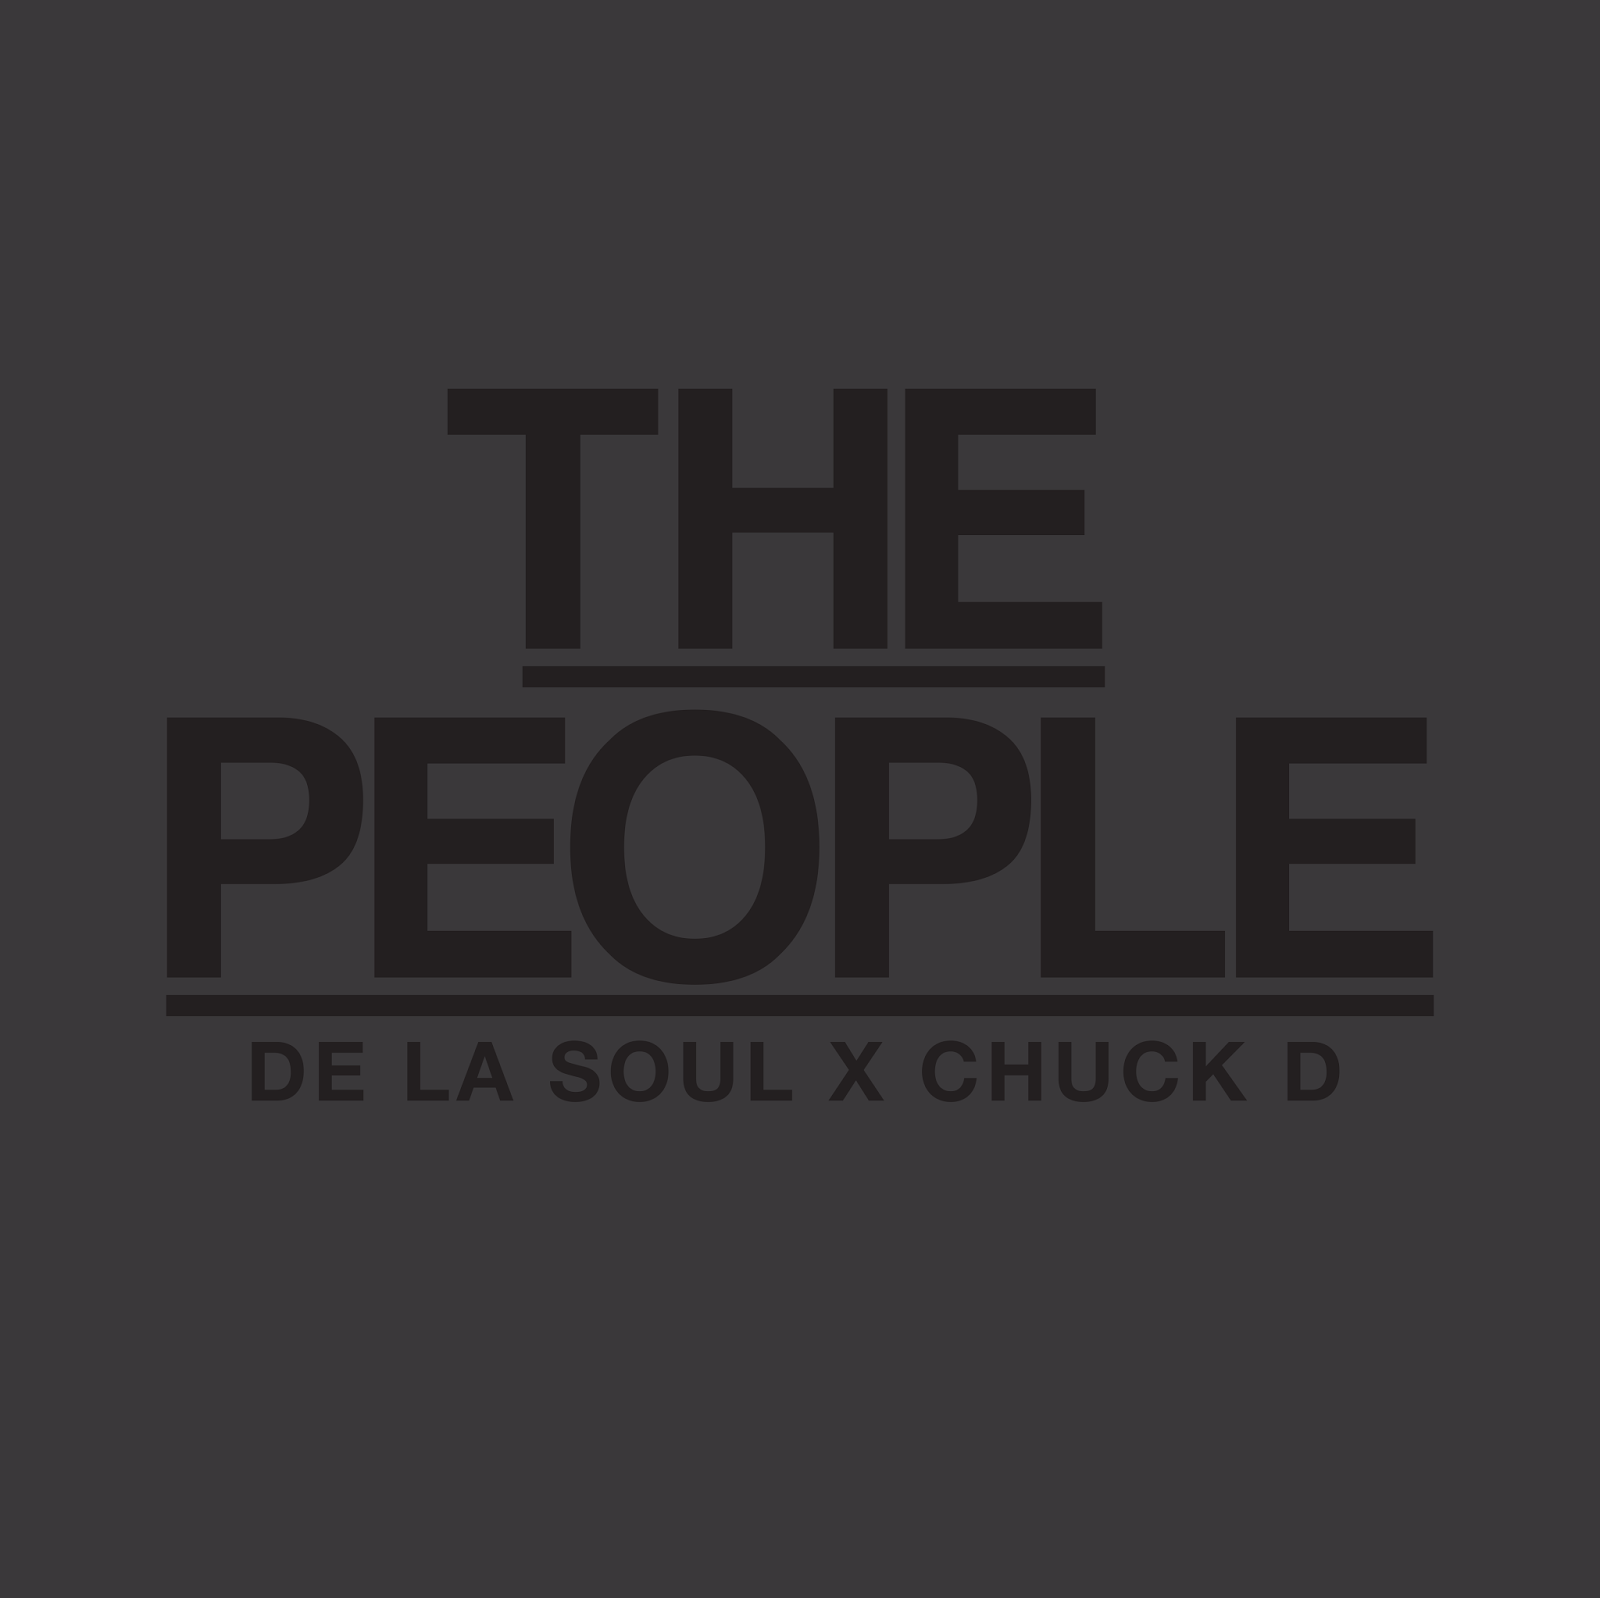 De La Soul x Chuck D  - The People ( Stream und Free Download )